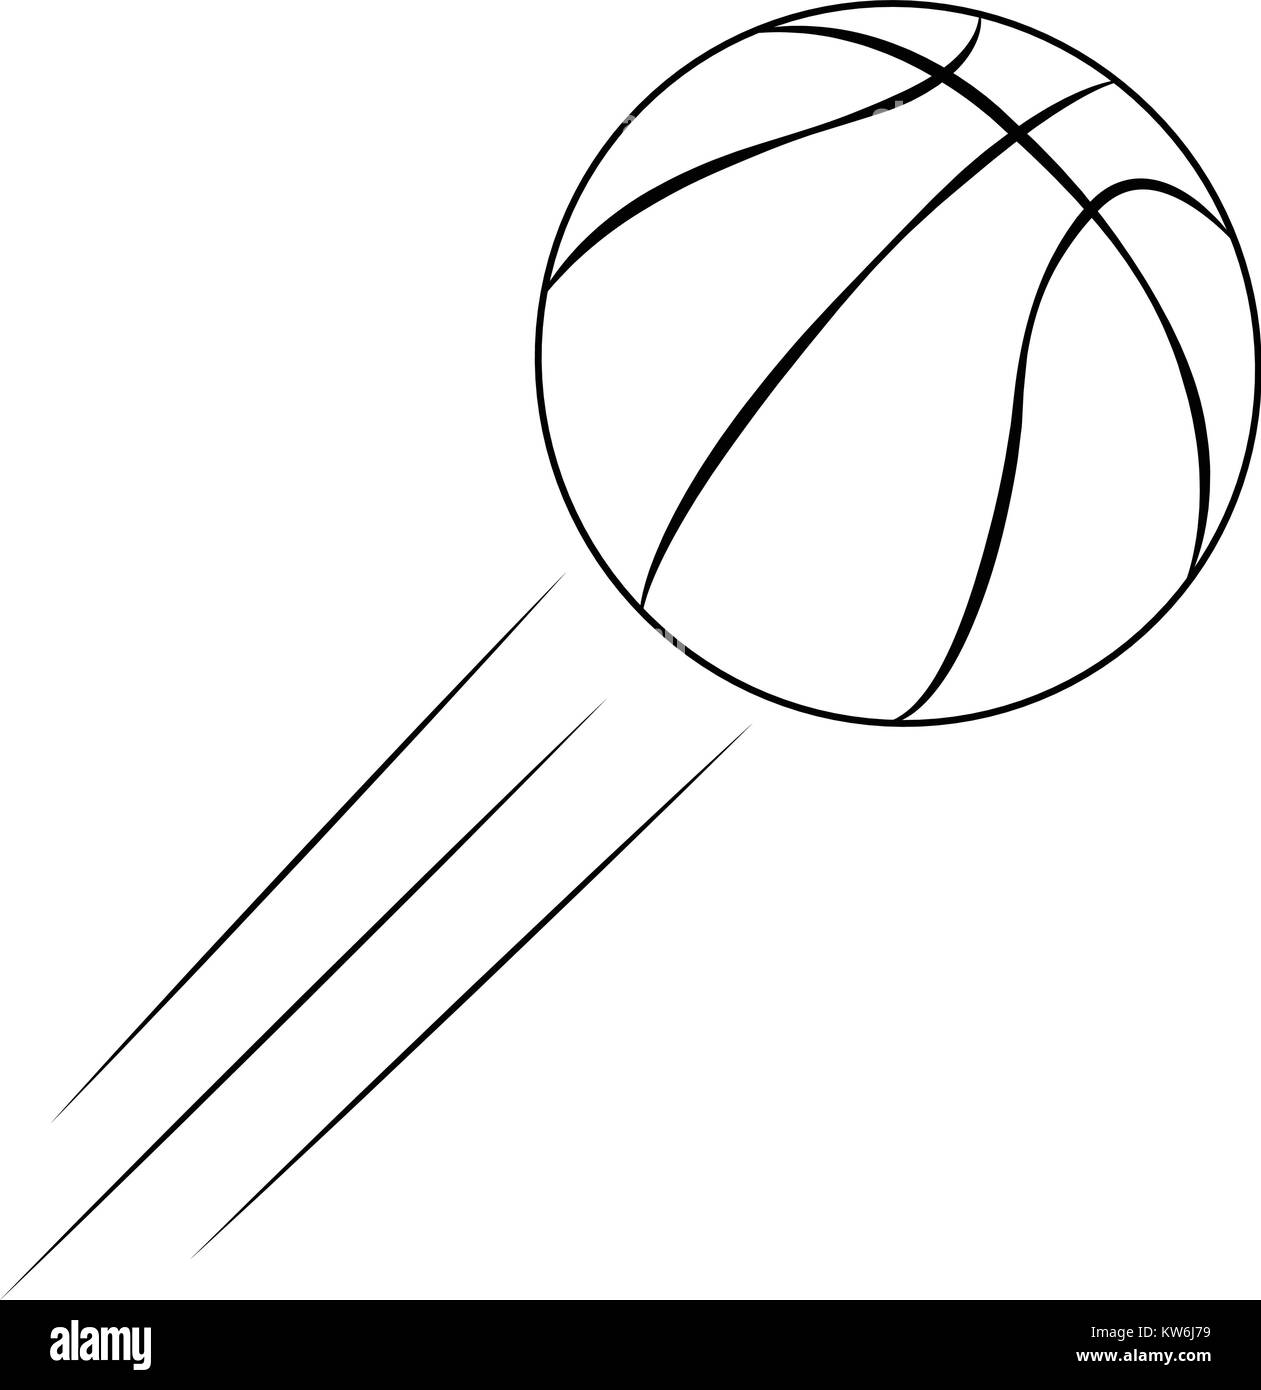 Basketball court stock vector images alamy abstract basketball label stock vector ccuart Images